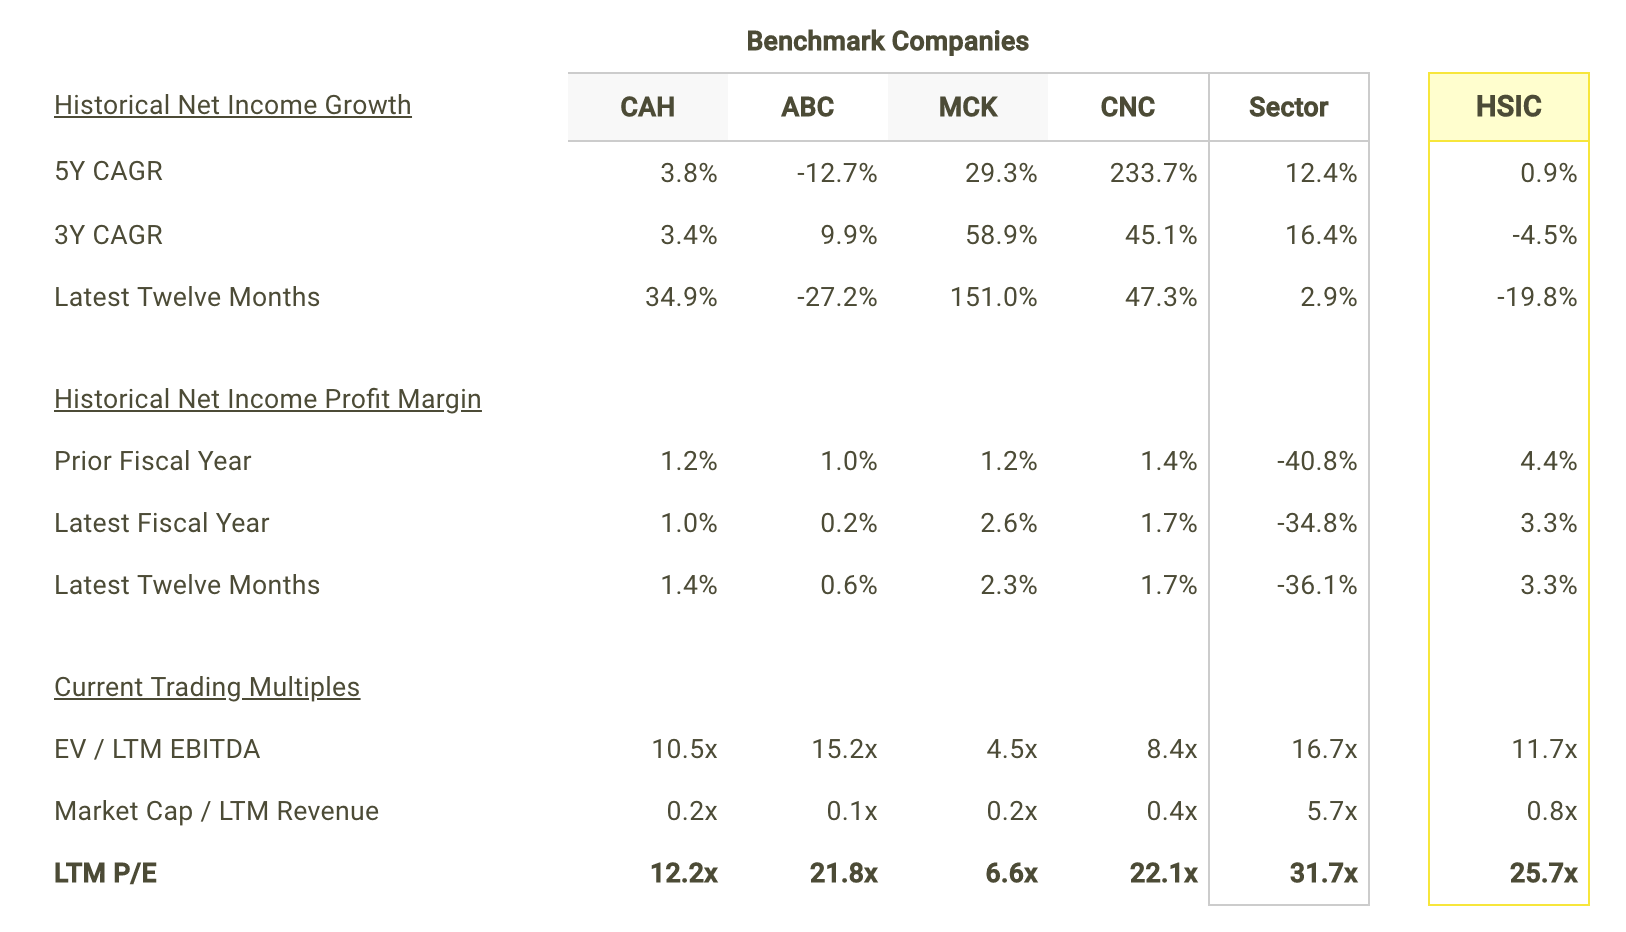 HSIC Net Income Growth and Margins vs Peers Table